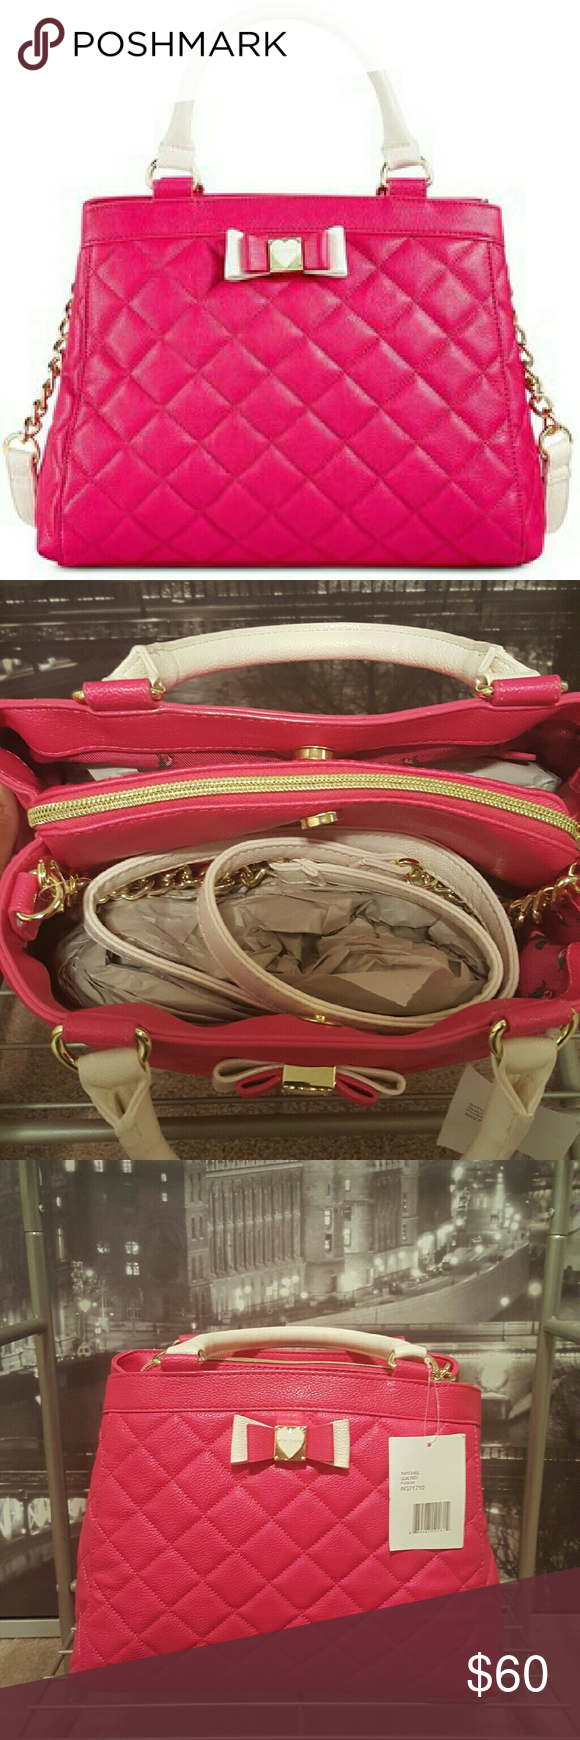 BRAND NEW Betsey Johnson quilted satchel Never been worn quilted satchel from the Great Betsy Johnson. The color is bold and fun!!! Great price in time for Xmas!!! Betsey Johnson Bags Satchels